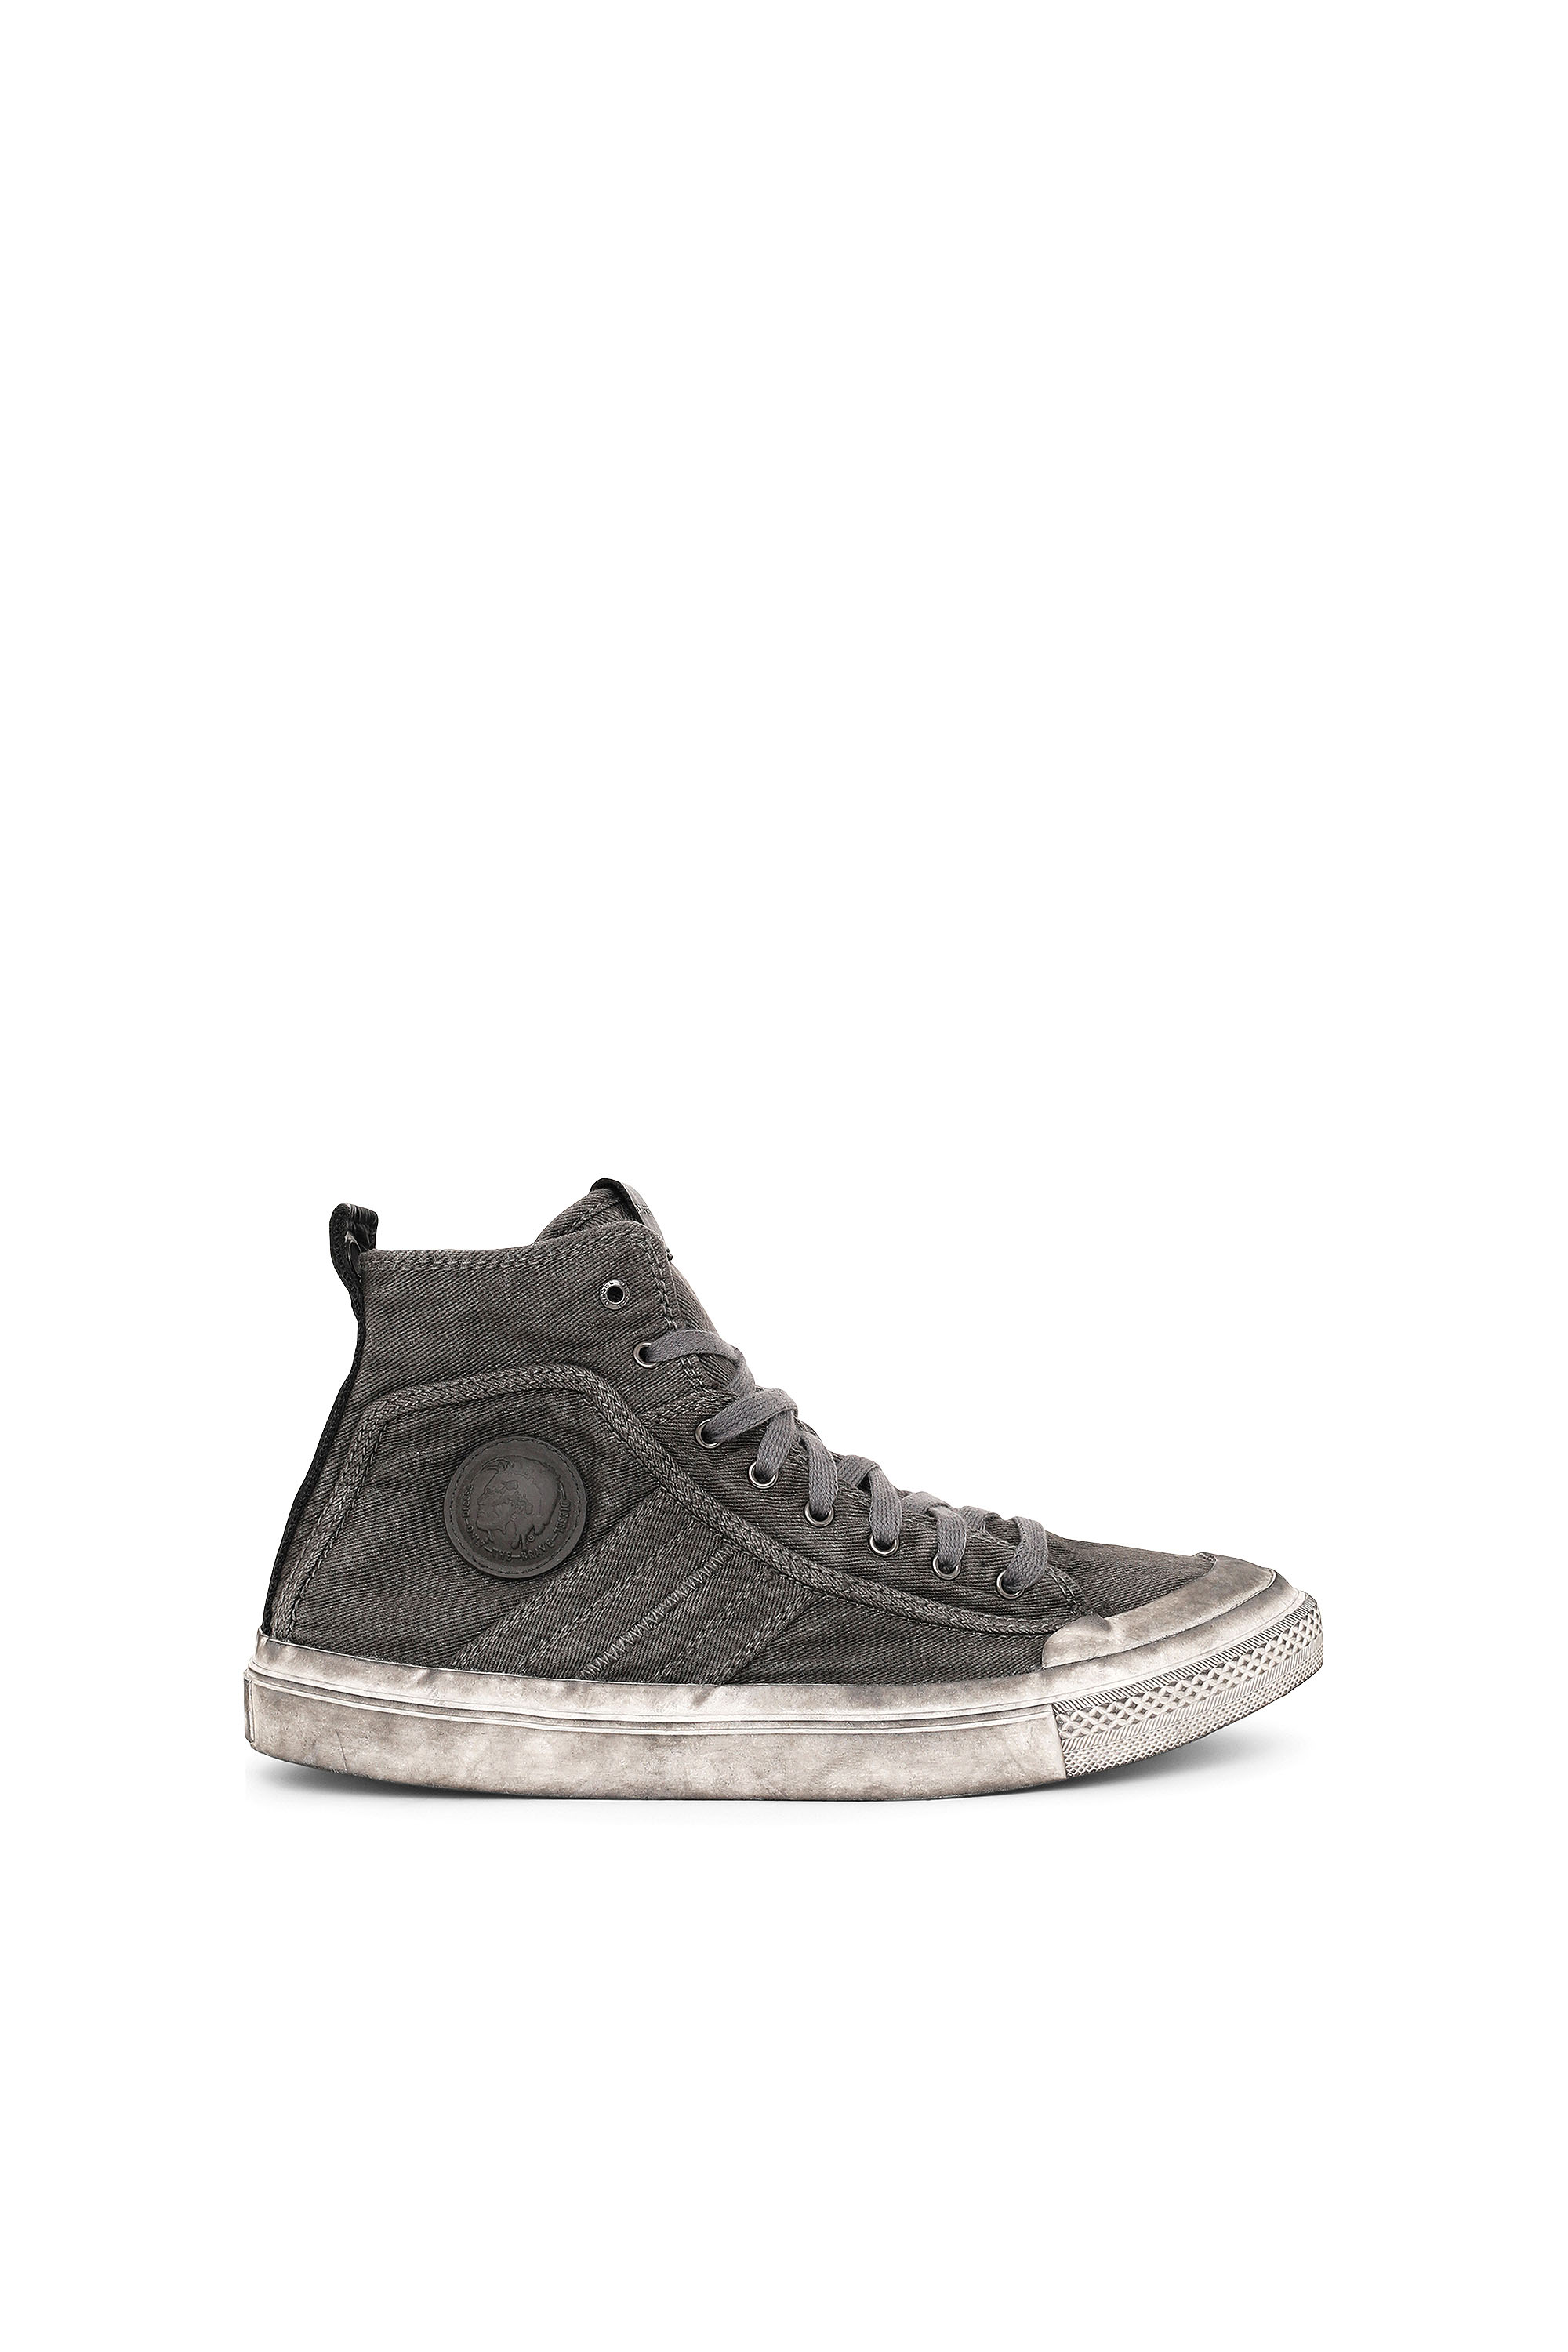 Diesel - S-ASTICO MID LACE,  - Sneakers - Image 1